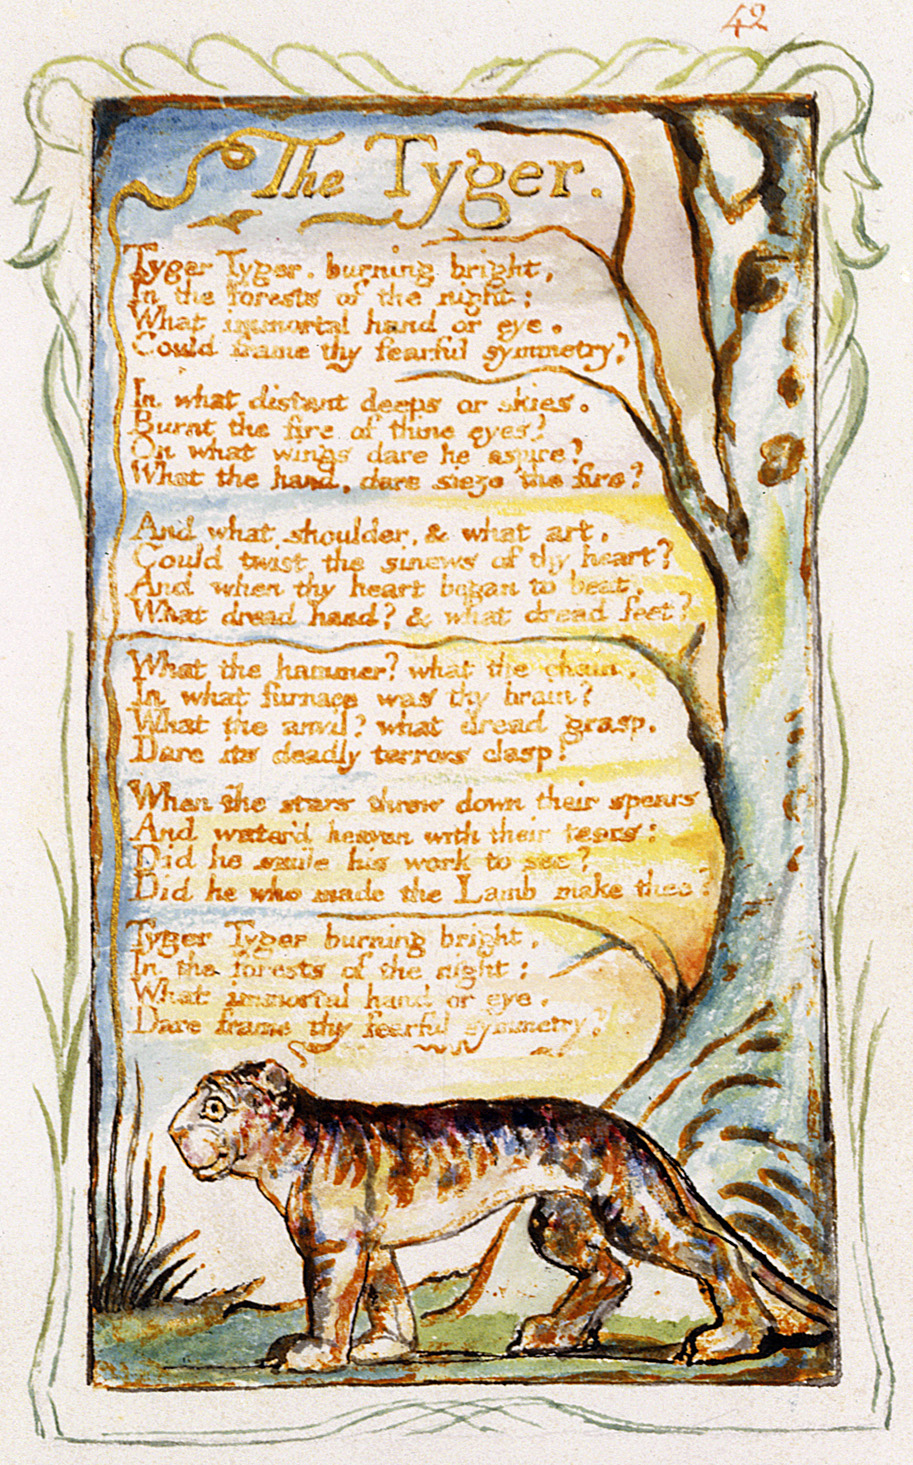 essay william blake tyger lamb Lamb and Tyger William Blake